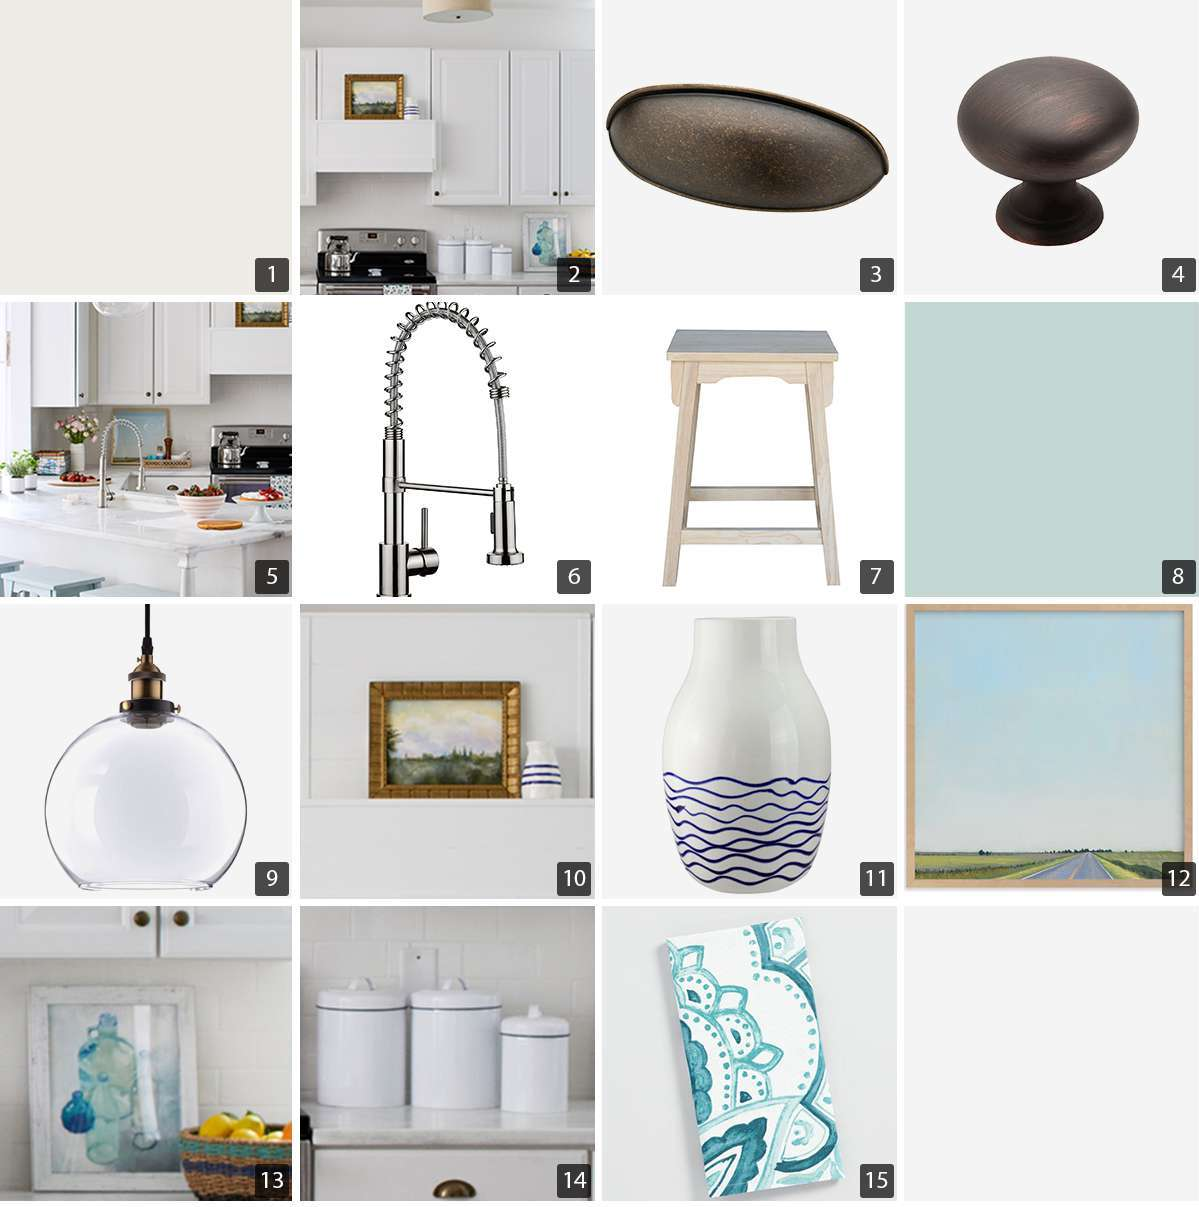 Collage of kitchen products including hardware, cabinets, sink faucet, and decor photo